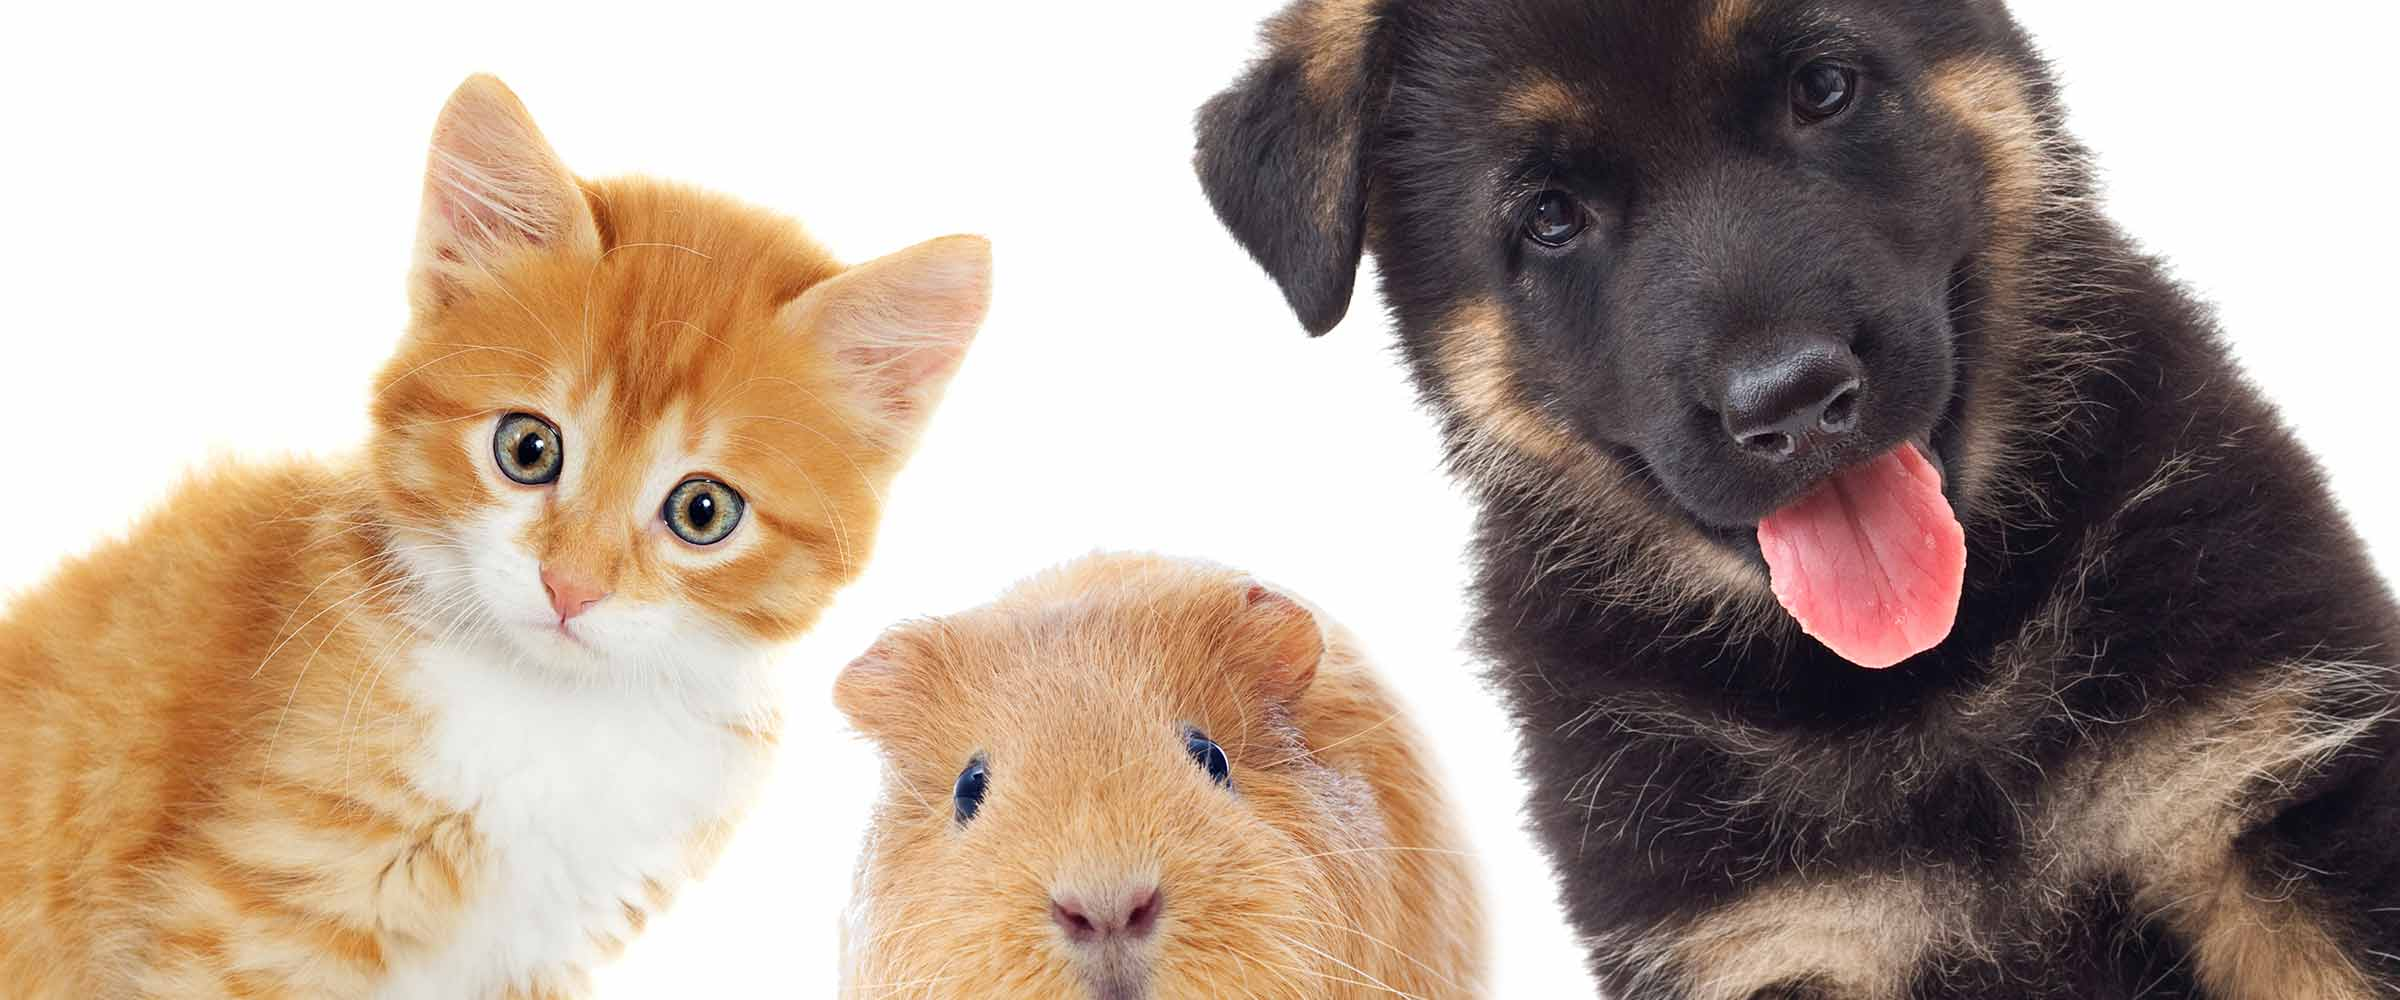 morphettville veterinary clinic cat dog and hamster